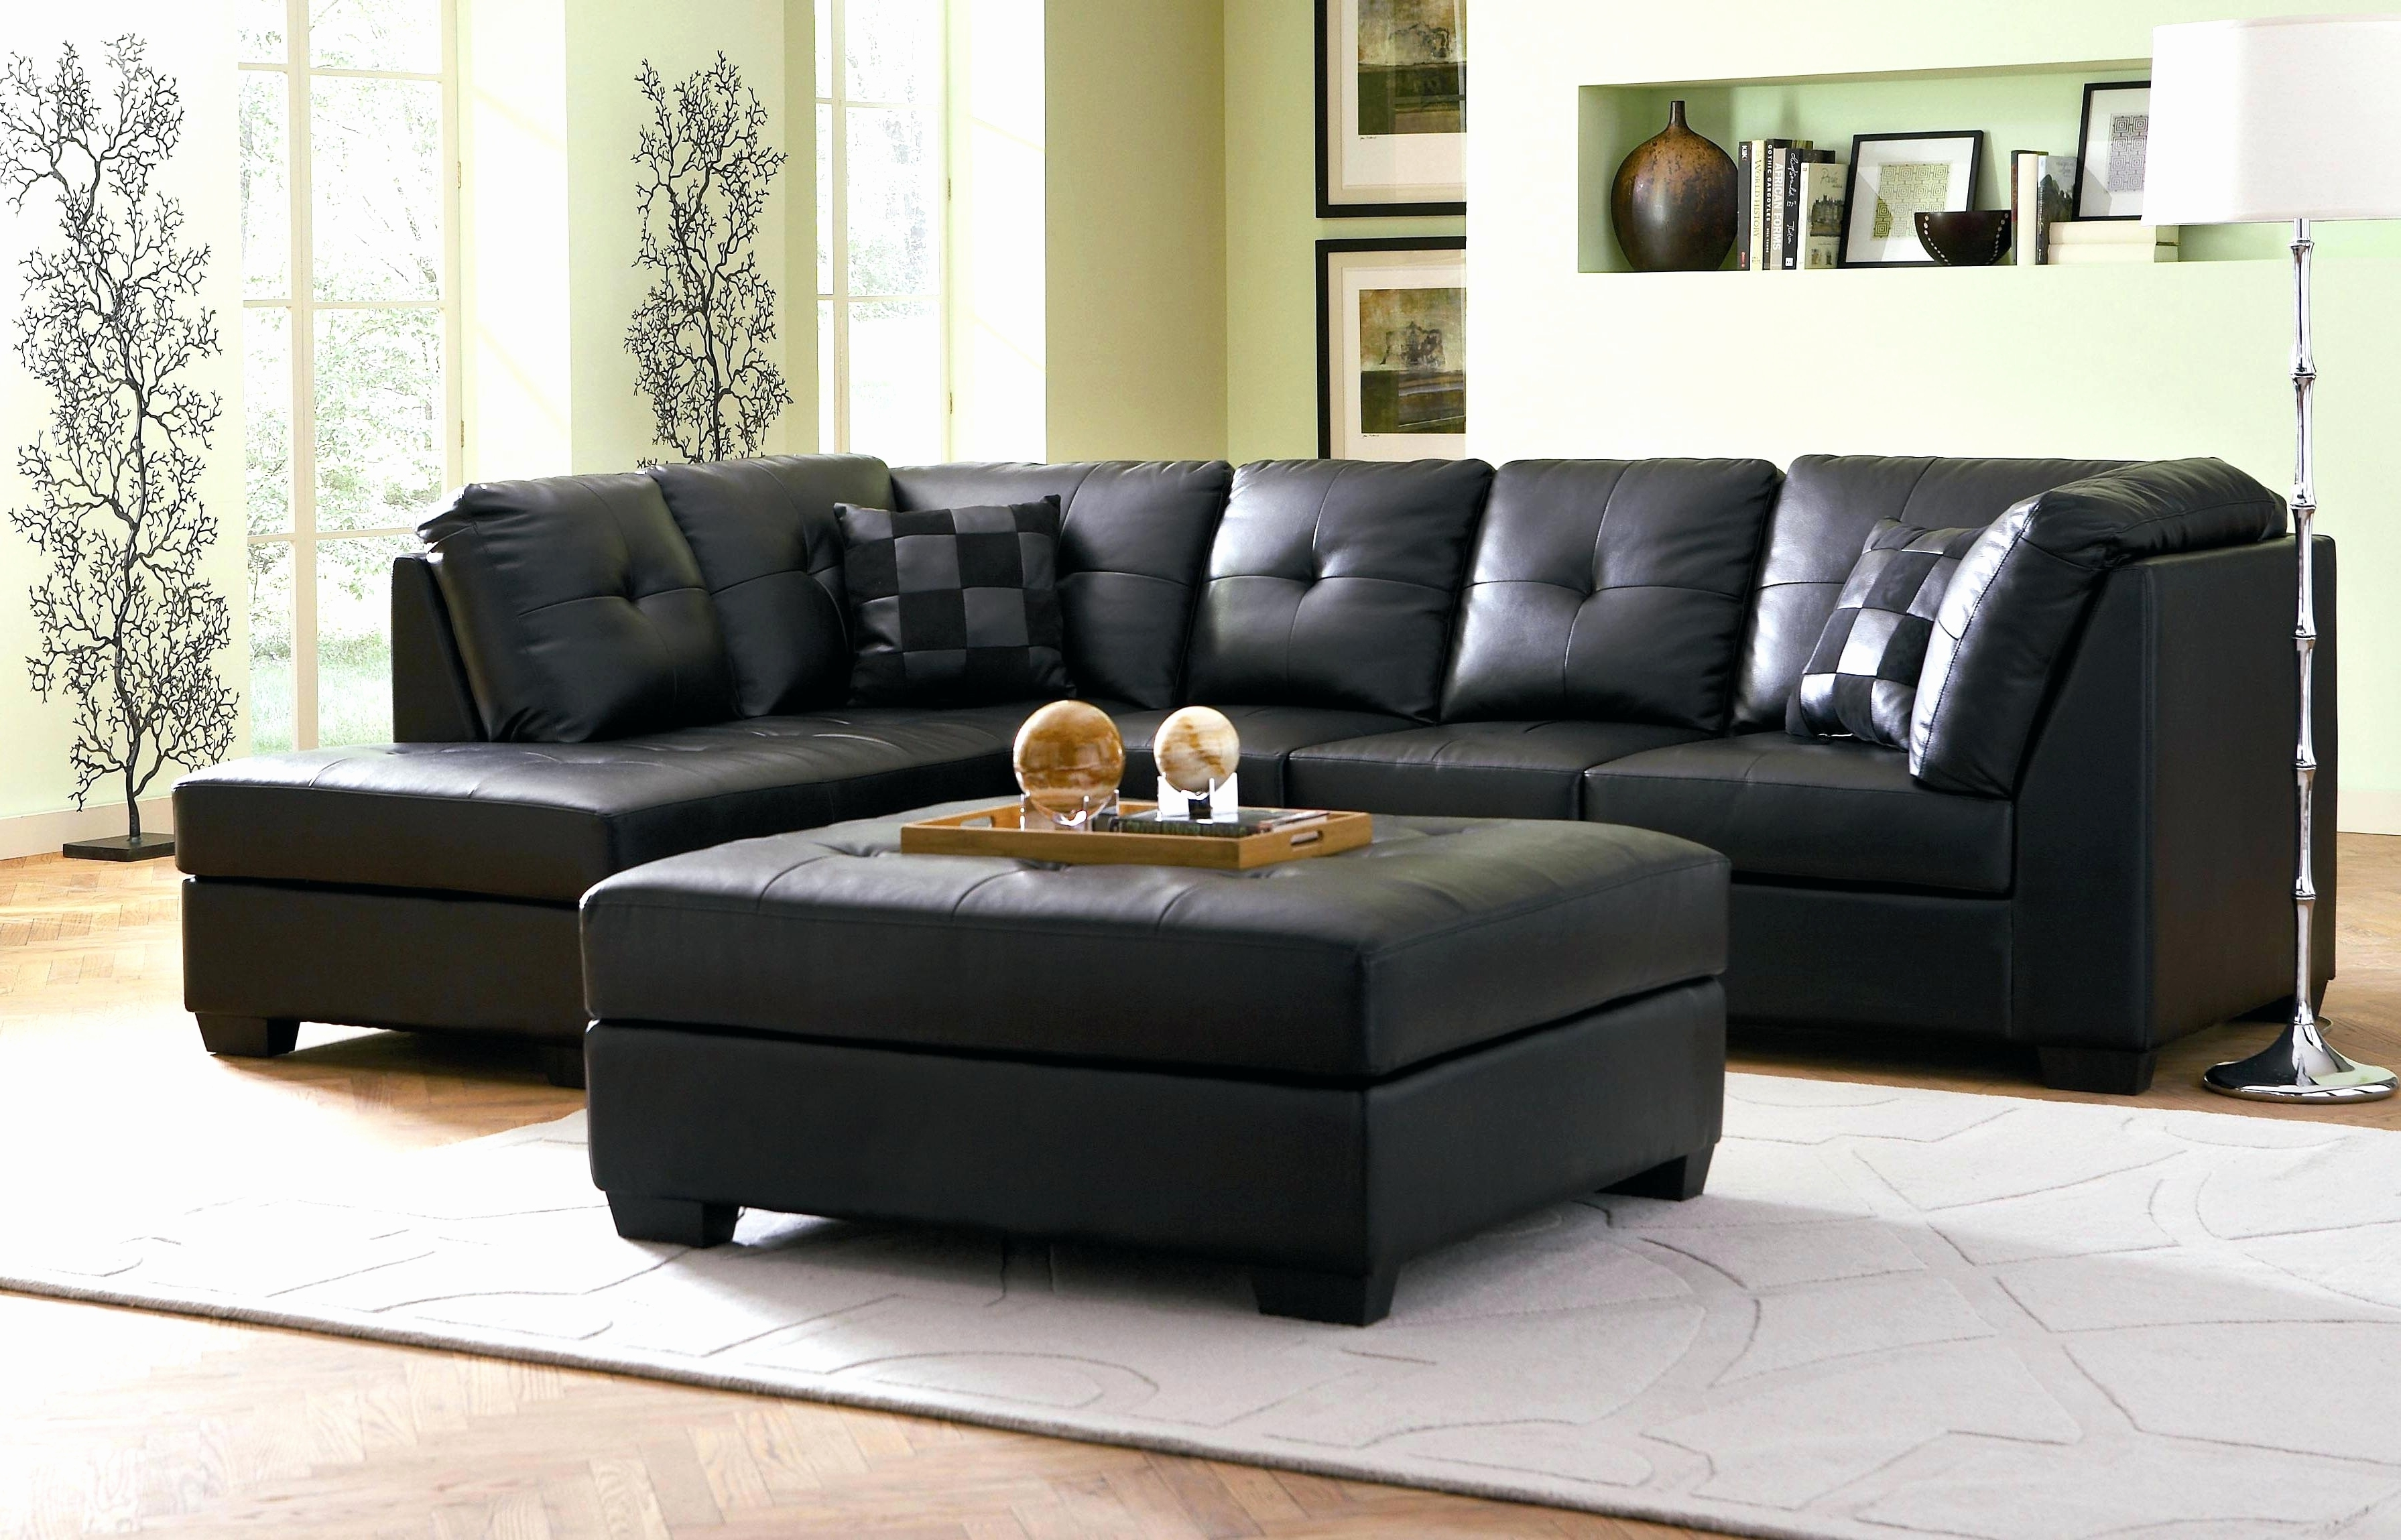 Well Liked Sectional Sofas In Small Spaces Intended For Luxury Reclining Sectional Sofas For Small Spaces 2018 – Couches (View 18 of 20)